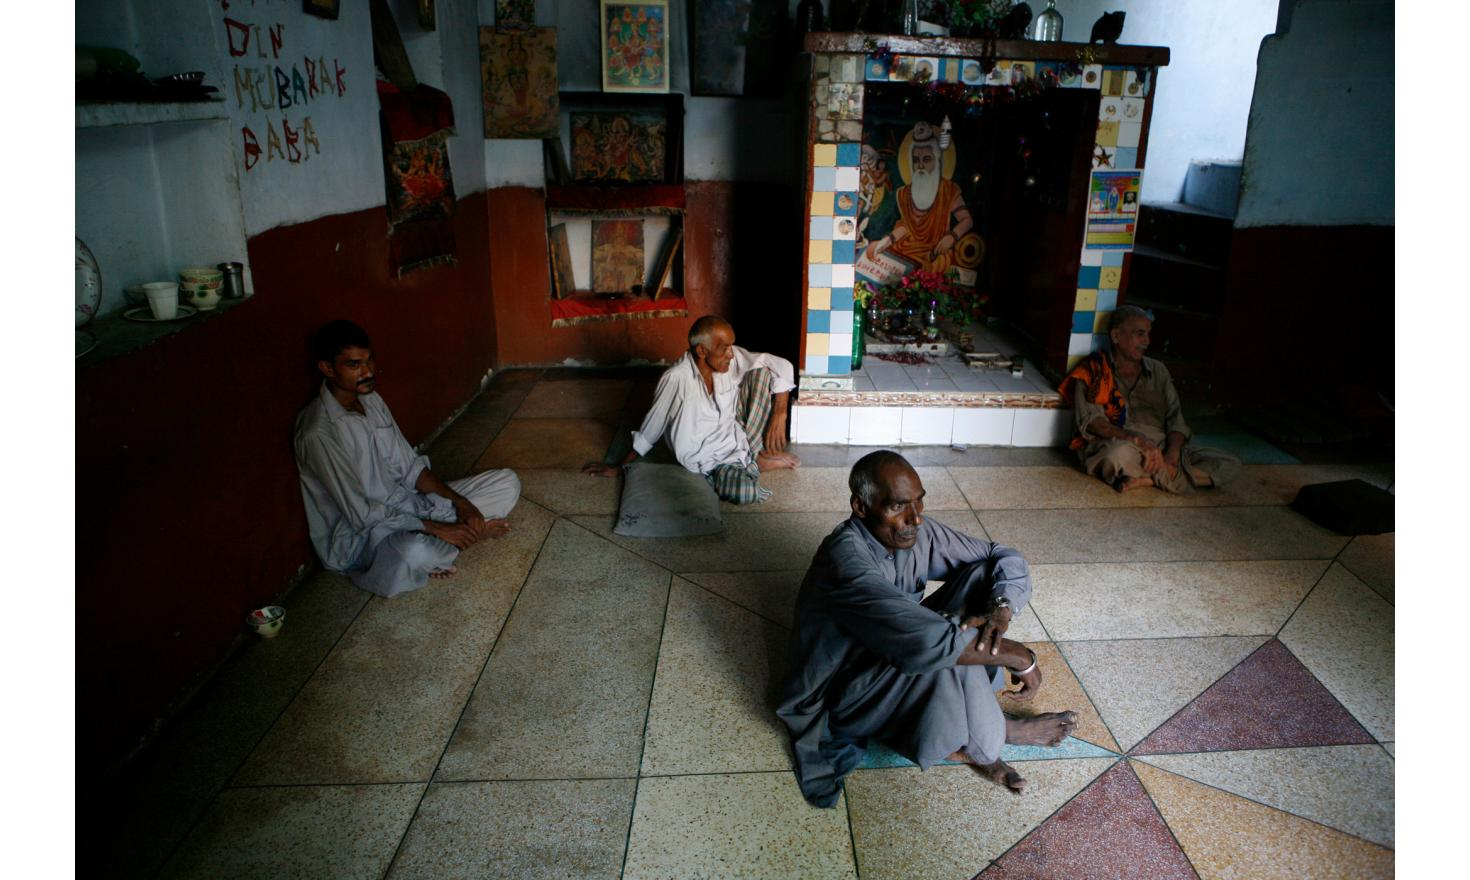 Hindu Temple in Lahore.Hindus. Tiny minority, about 3 million, they have mostly migrated to India during the partition. Difficult to access, they live discreetly. Here they share a temple with christians.